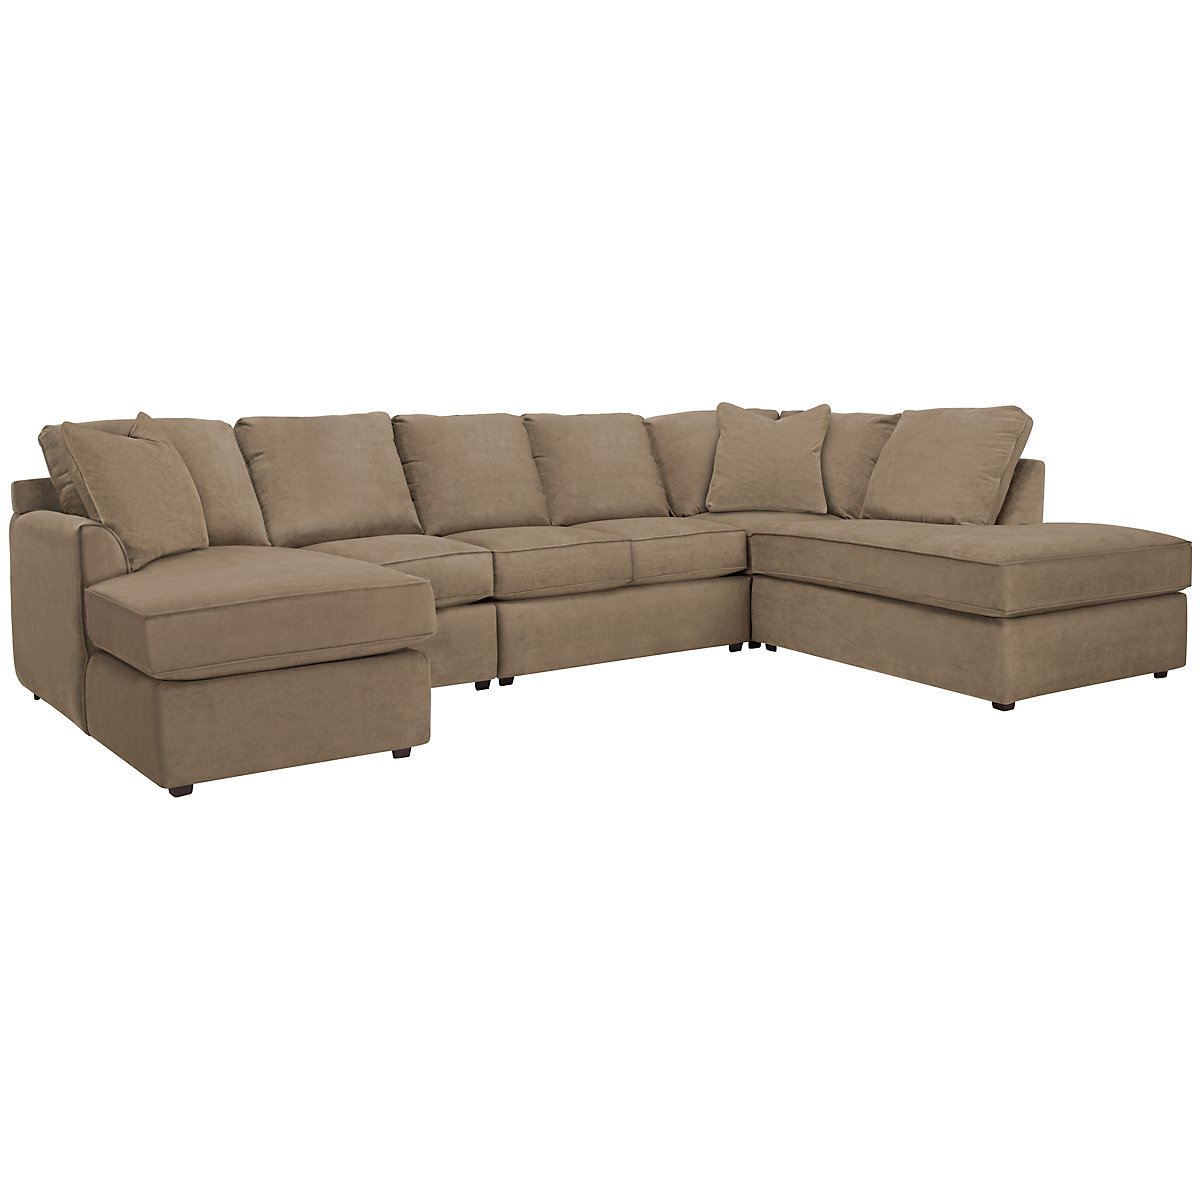 Express3 Light Brown Microfiber Large Right Bumper Sectional